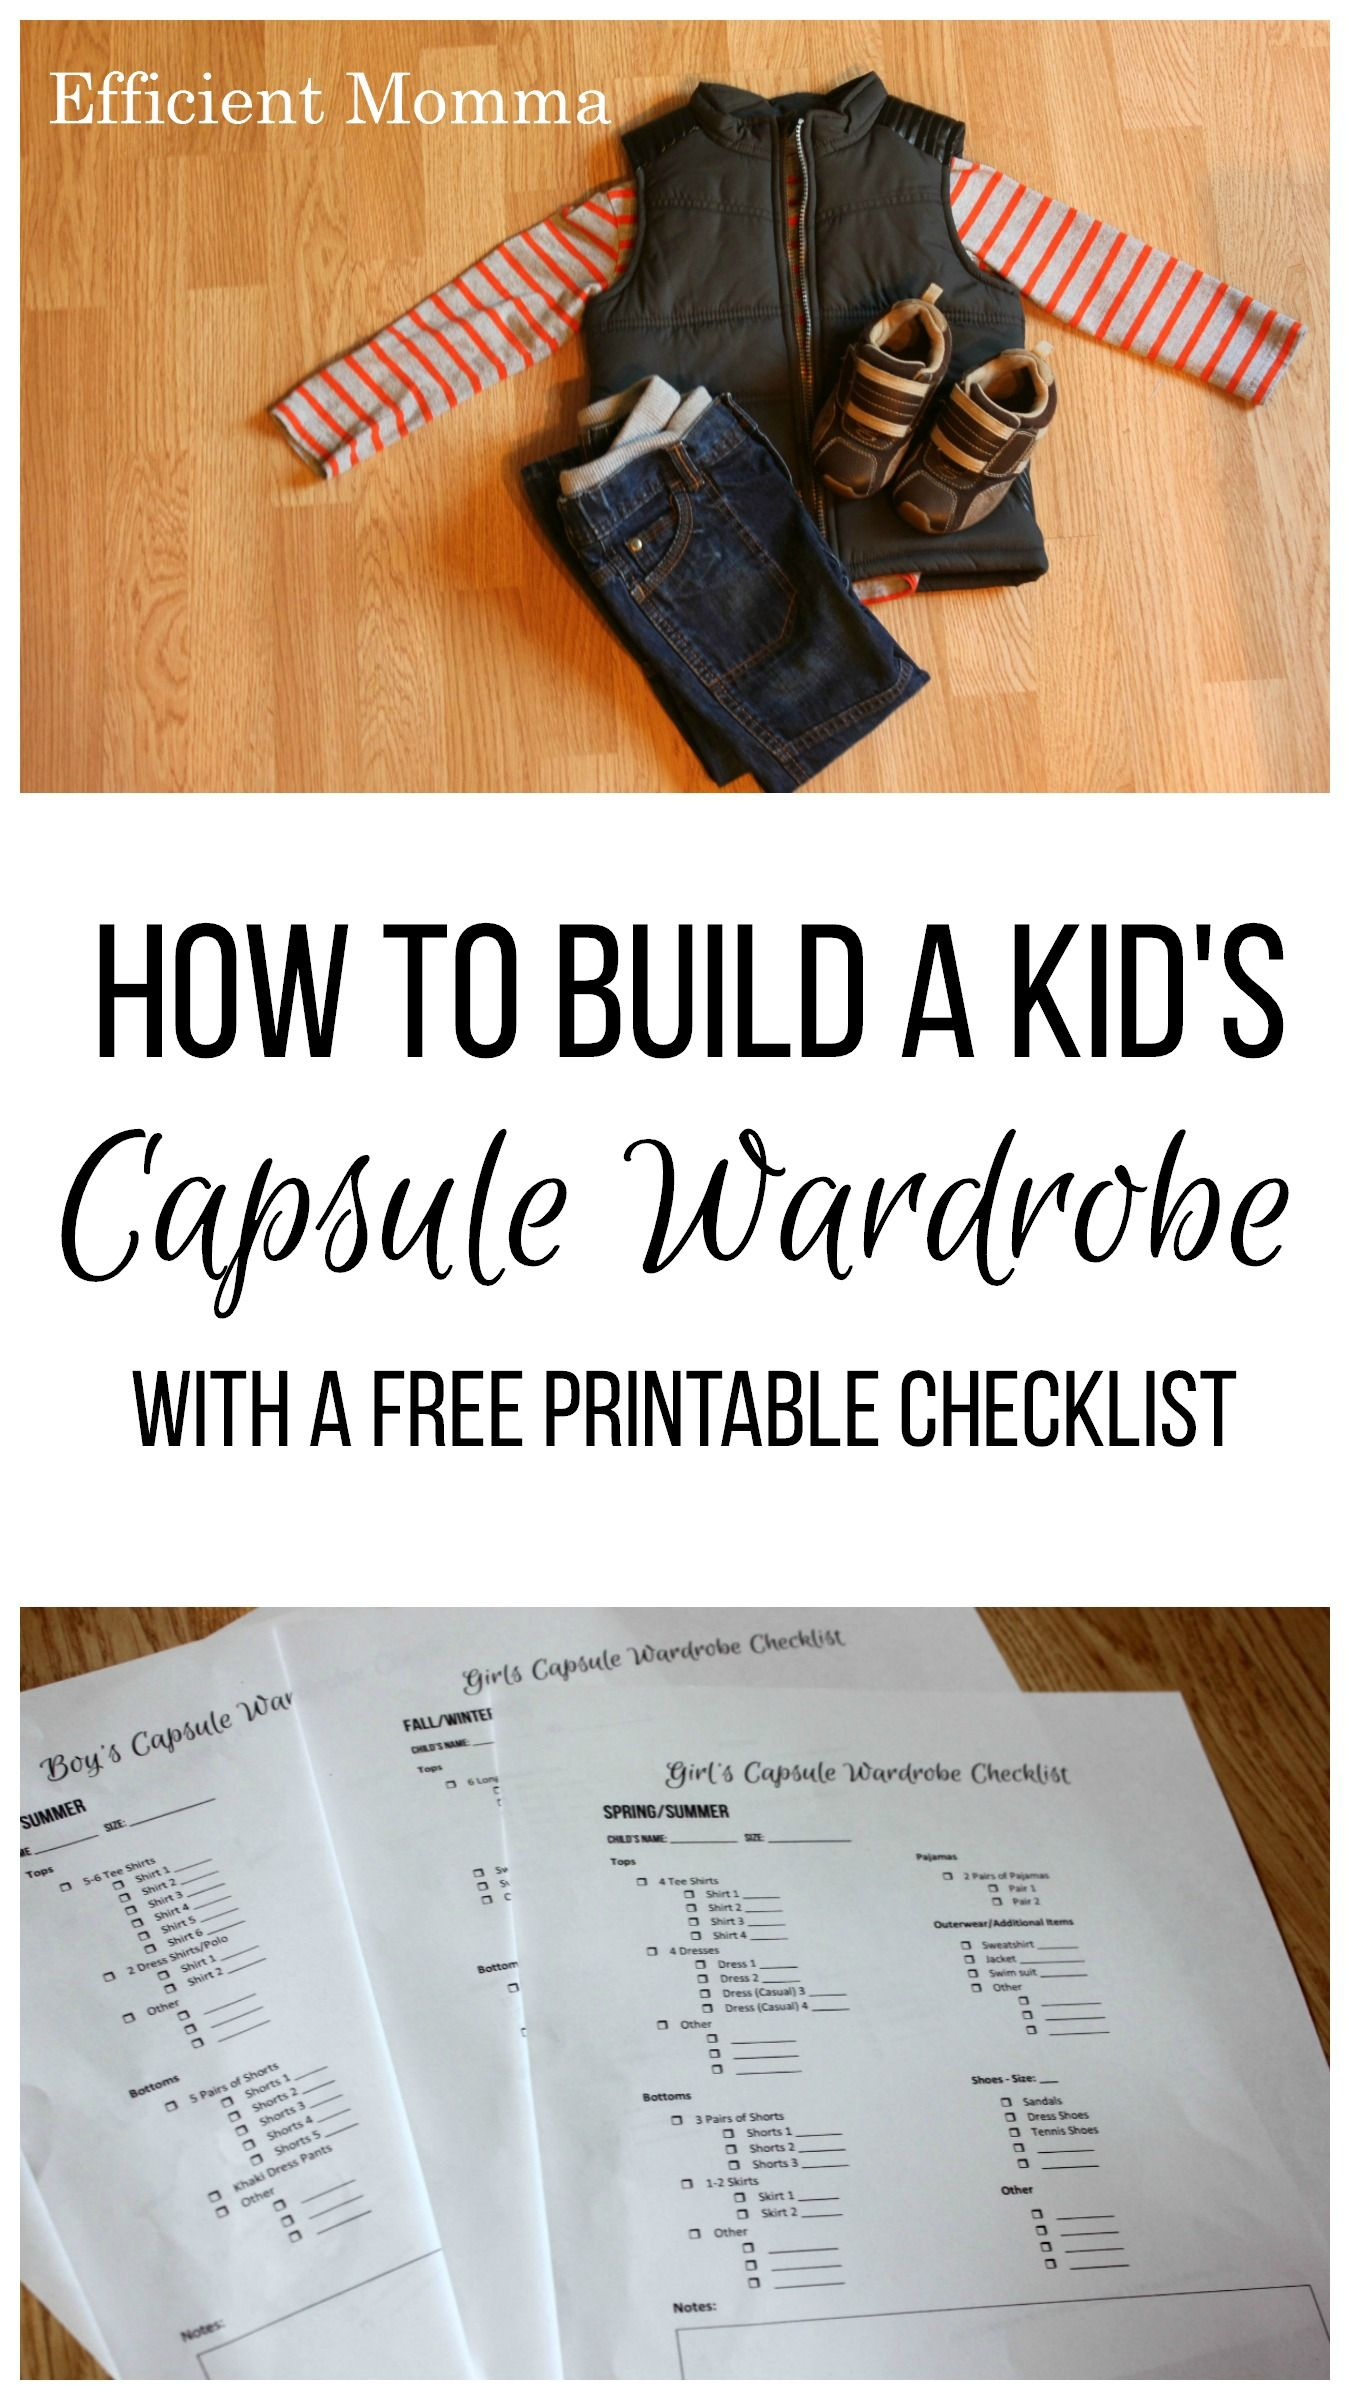 Great tips for building a kid's capsule wardrobe. Love the checklist to help